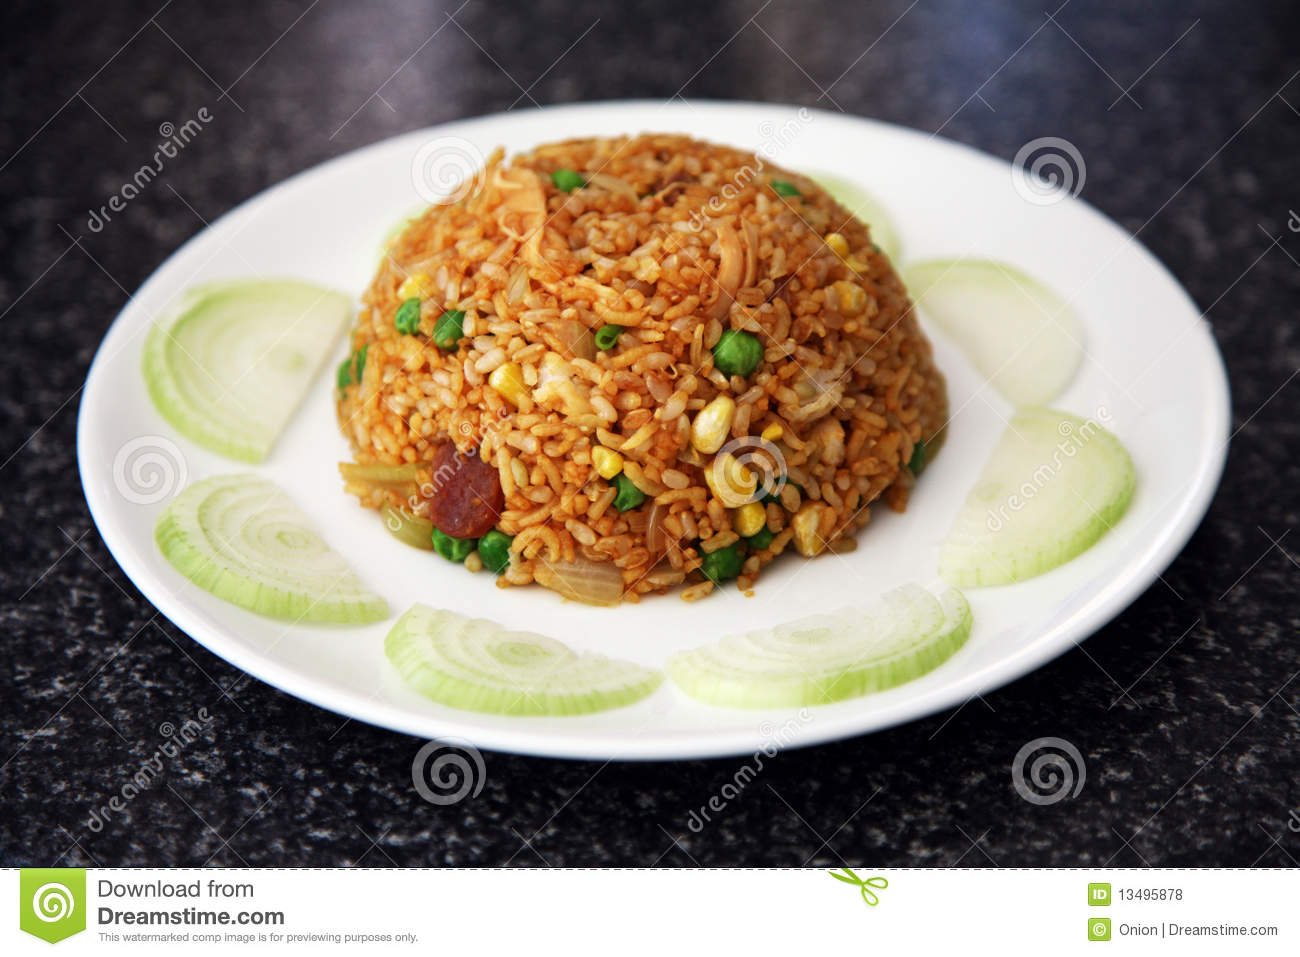 Fried Rice On A Plate Stock Photo Image Of East Chicken